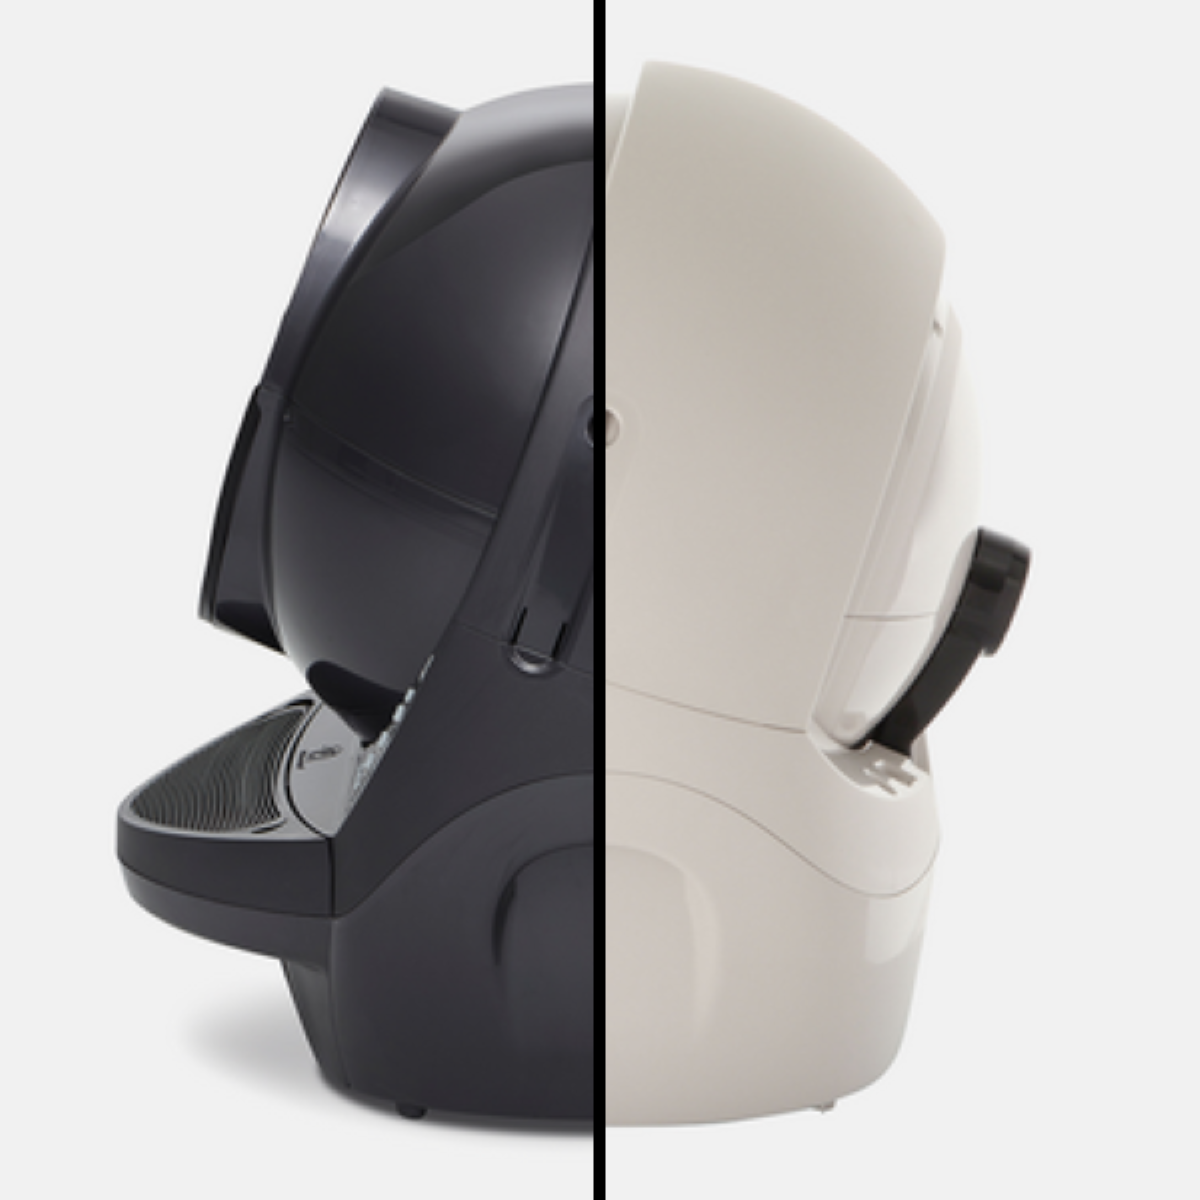 Litter-Robot 3 Connect - 2 Different Color Models